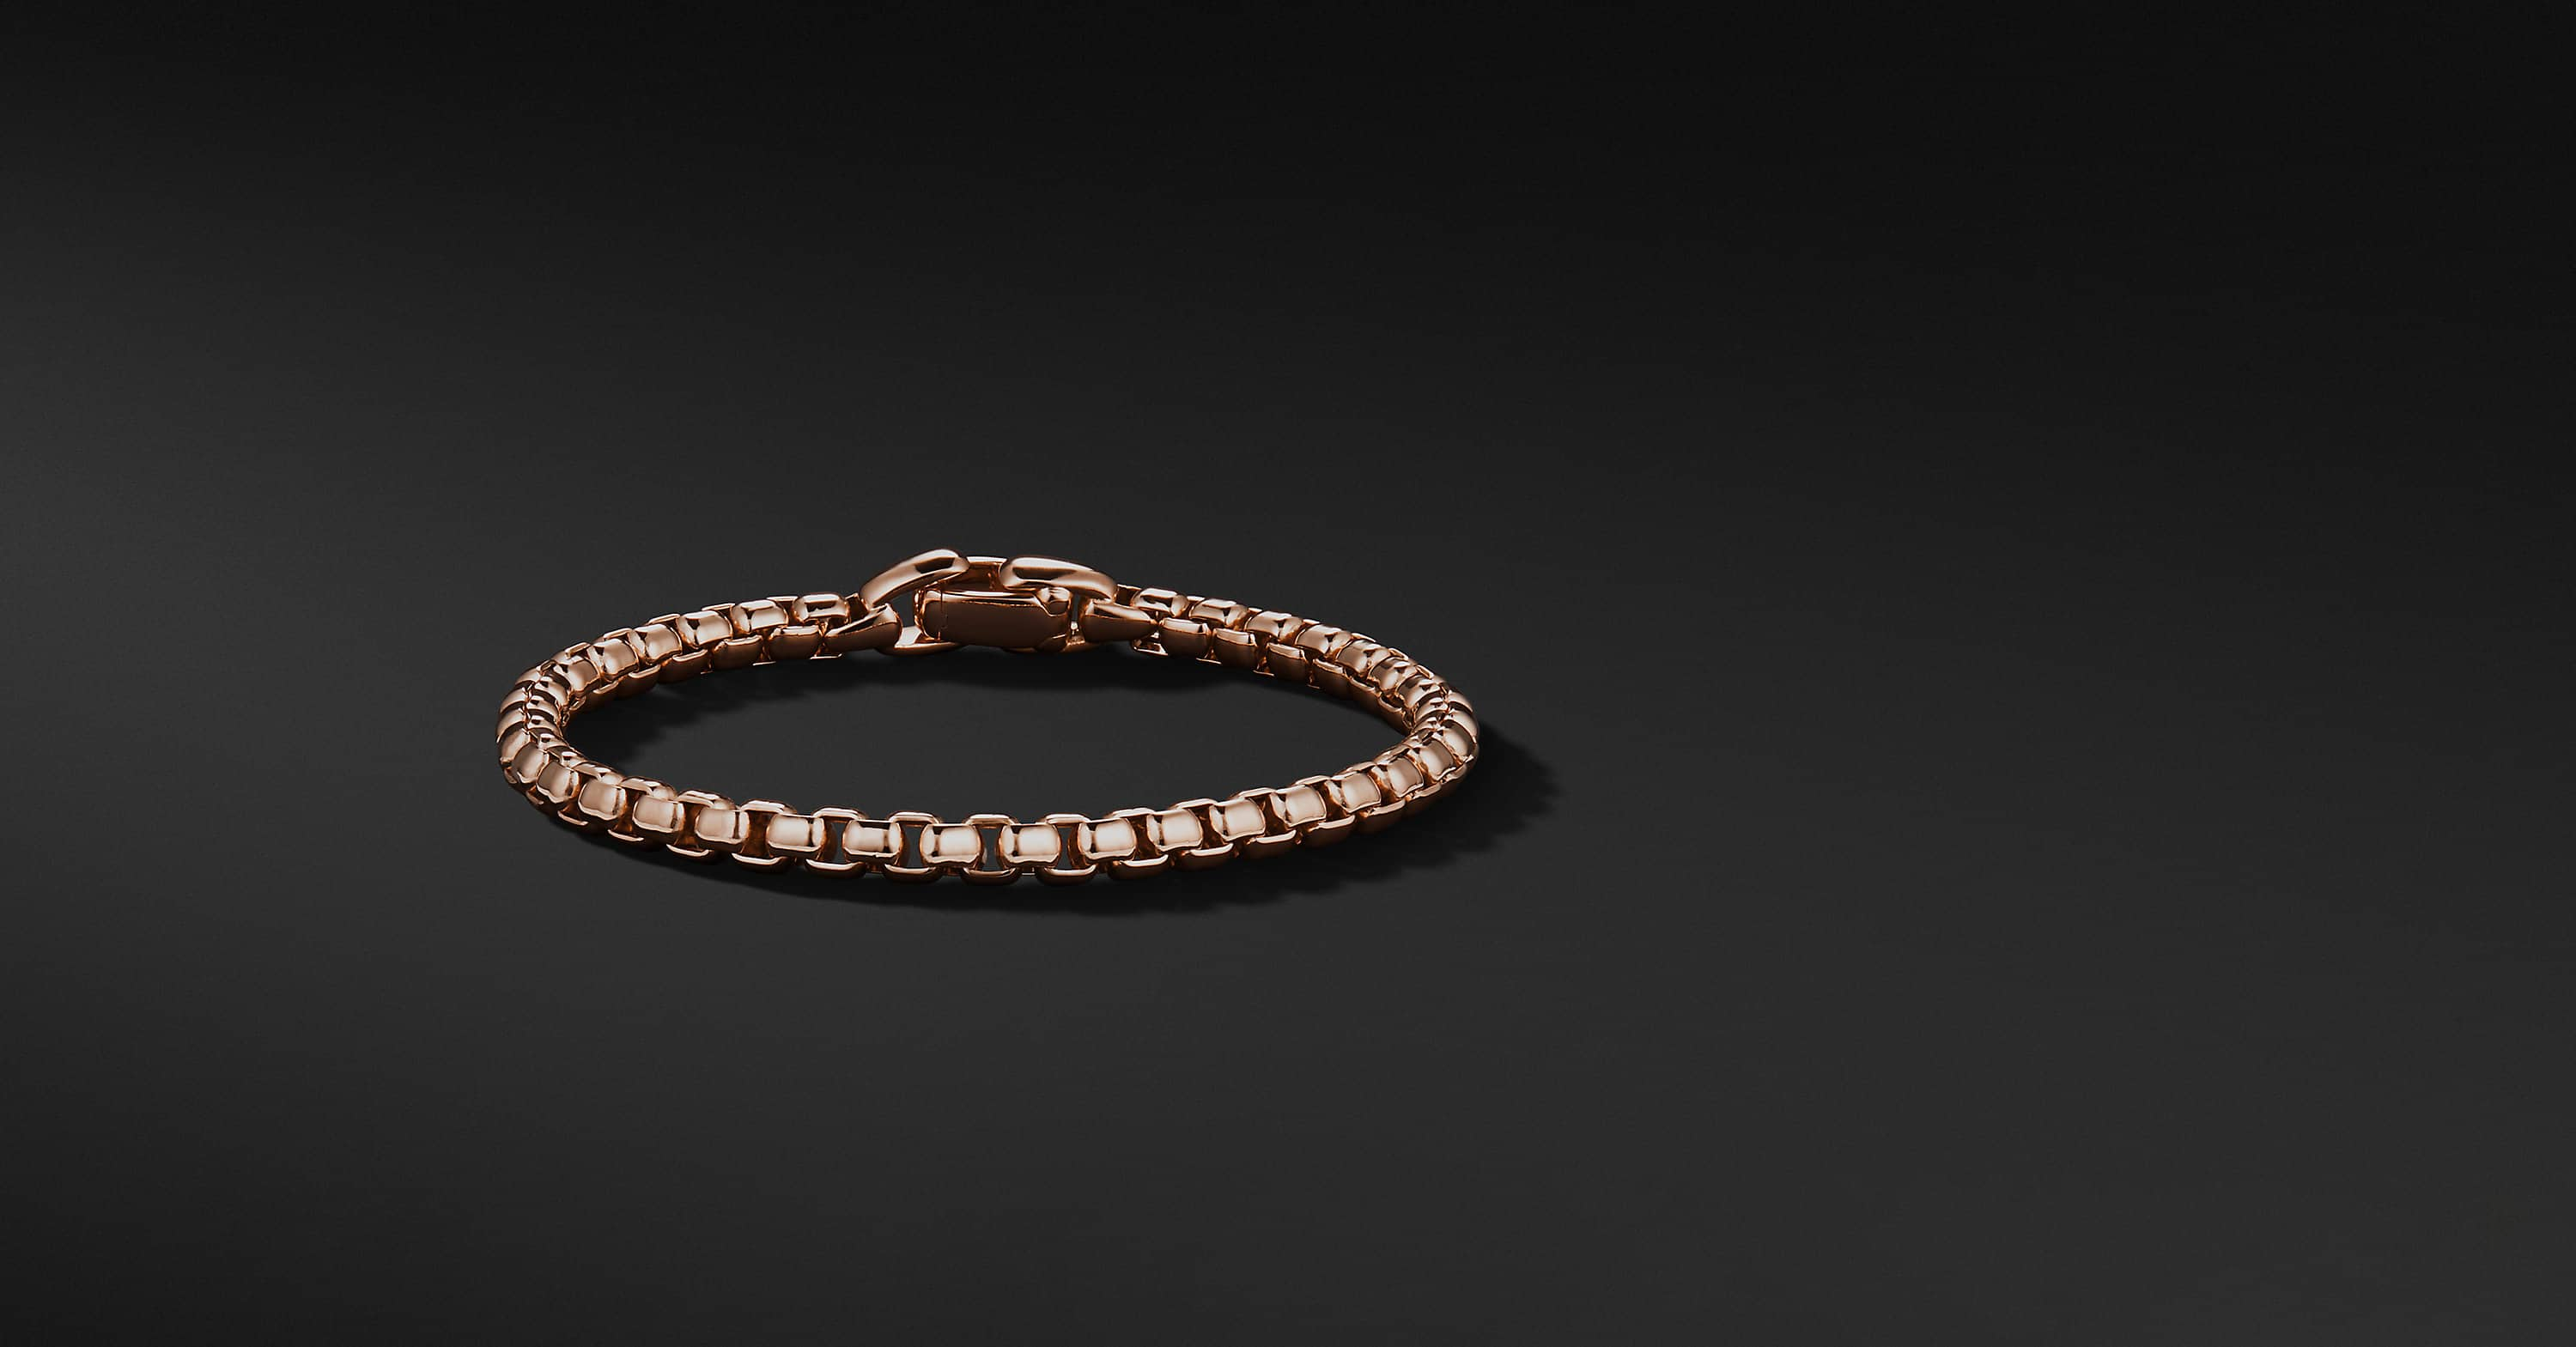 Box Chain Bracelet in 18K Rose Gold, 5mm